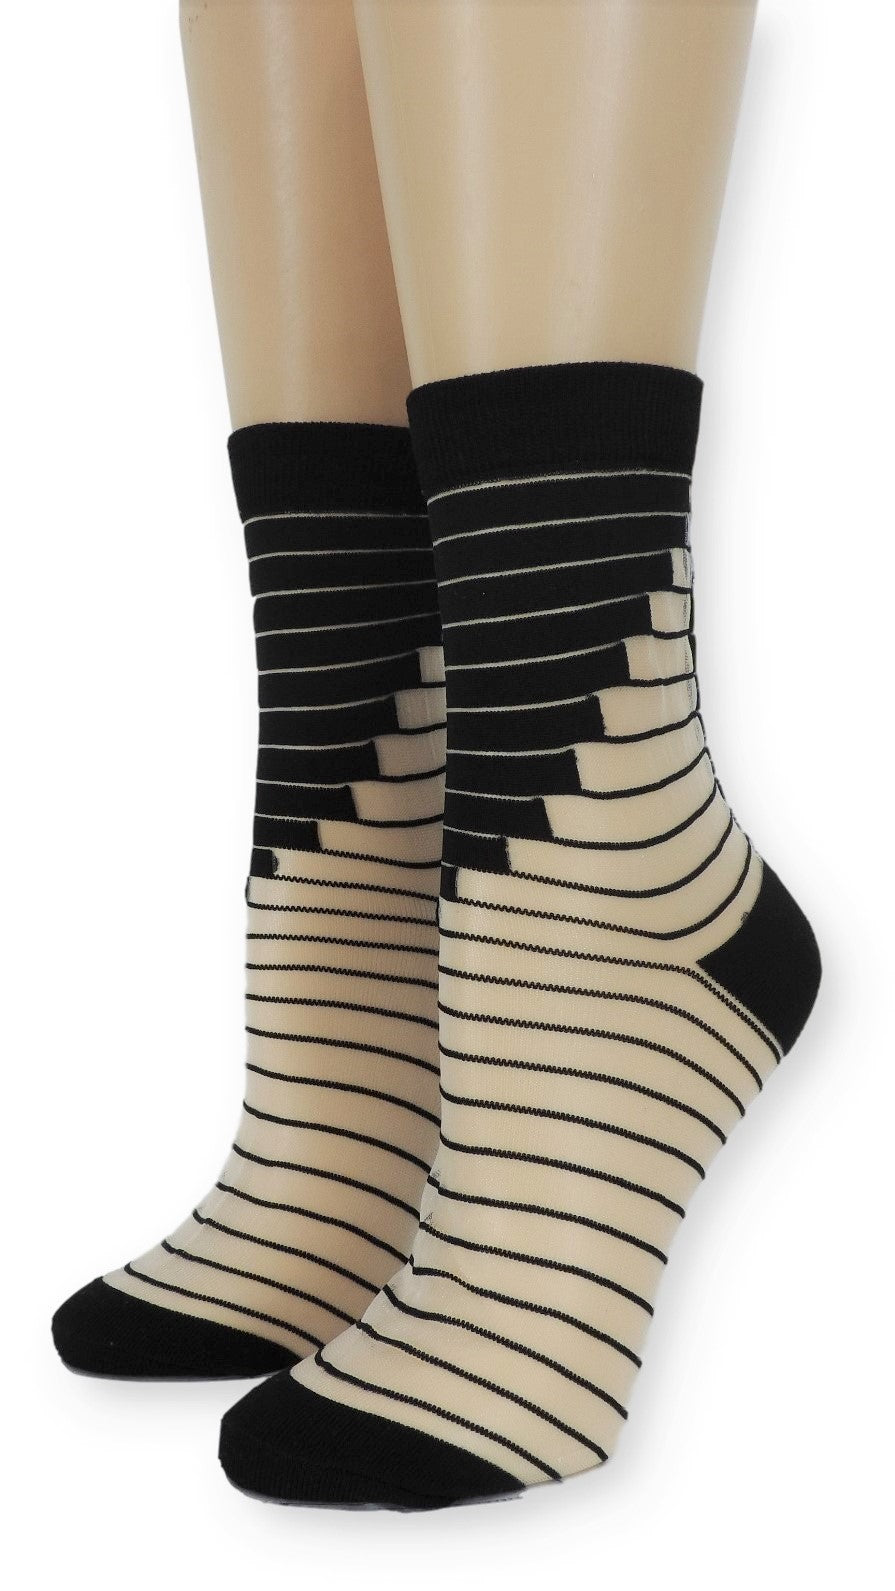 Artistic Black Striped Sheer Socks - Global Trendz Fashion®